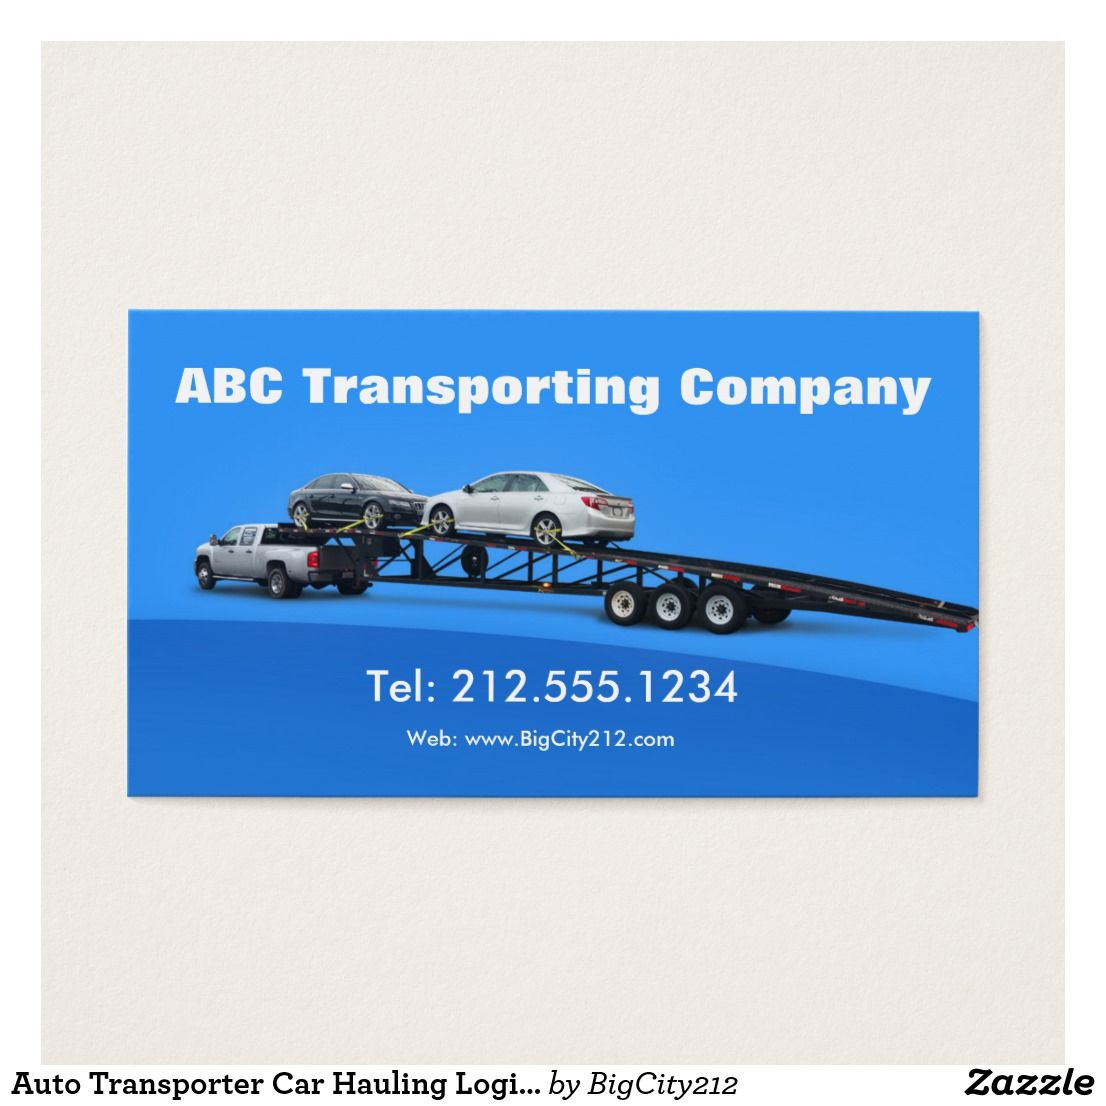 Auto Transporter Car Hauling Logistics Custom Check Out More Business Card Designs At Http